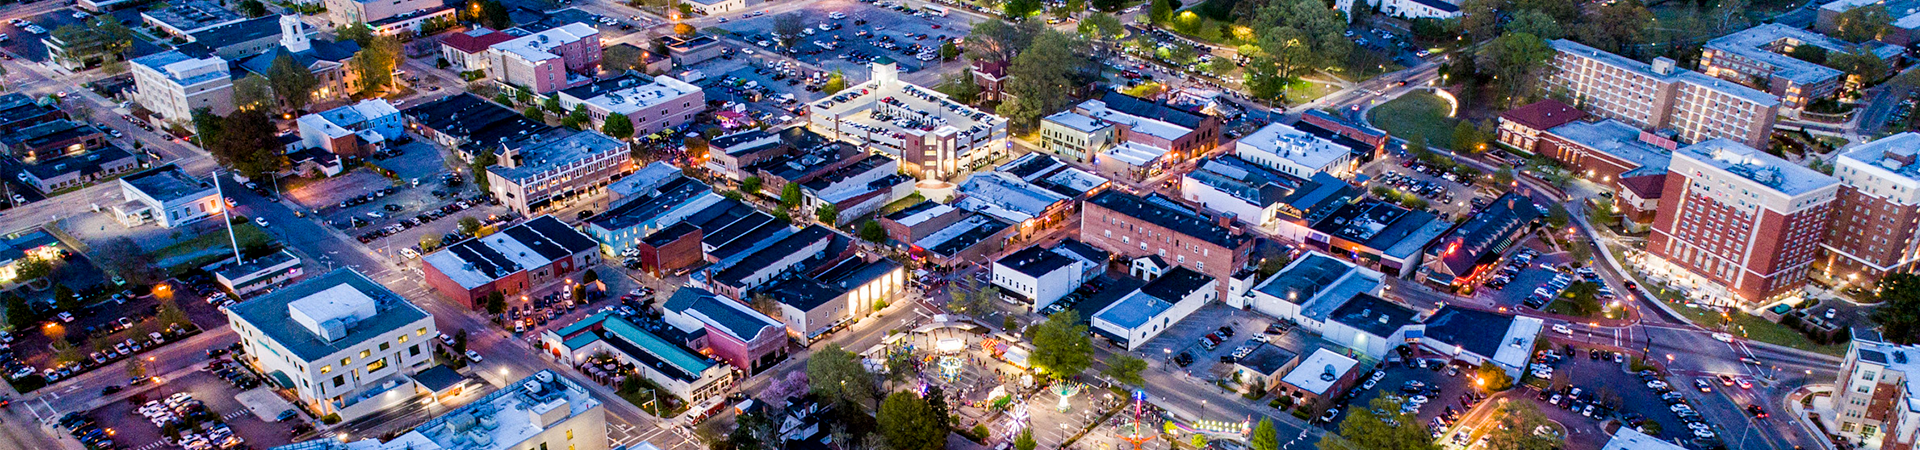 Night aerial view of uptown area